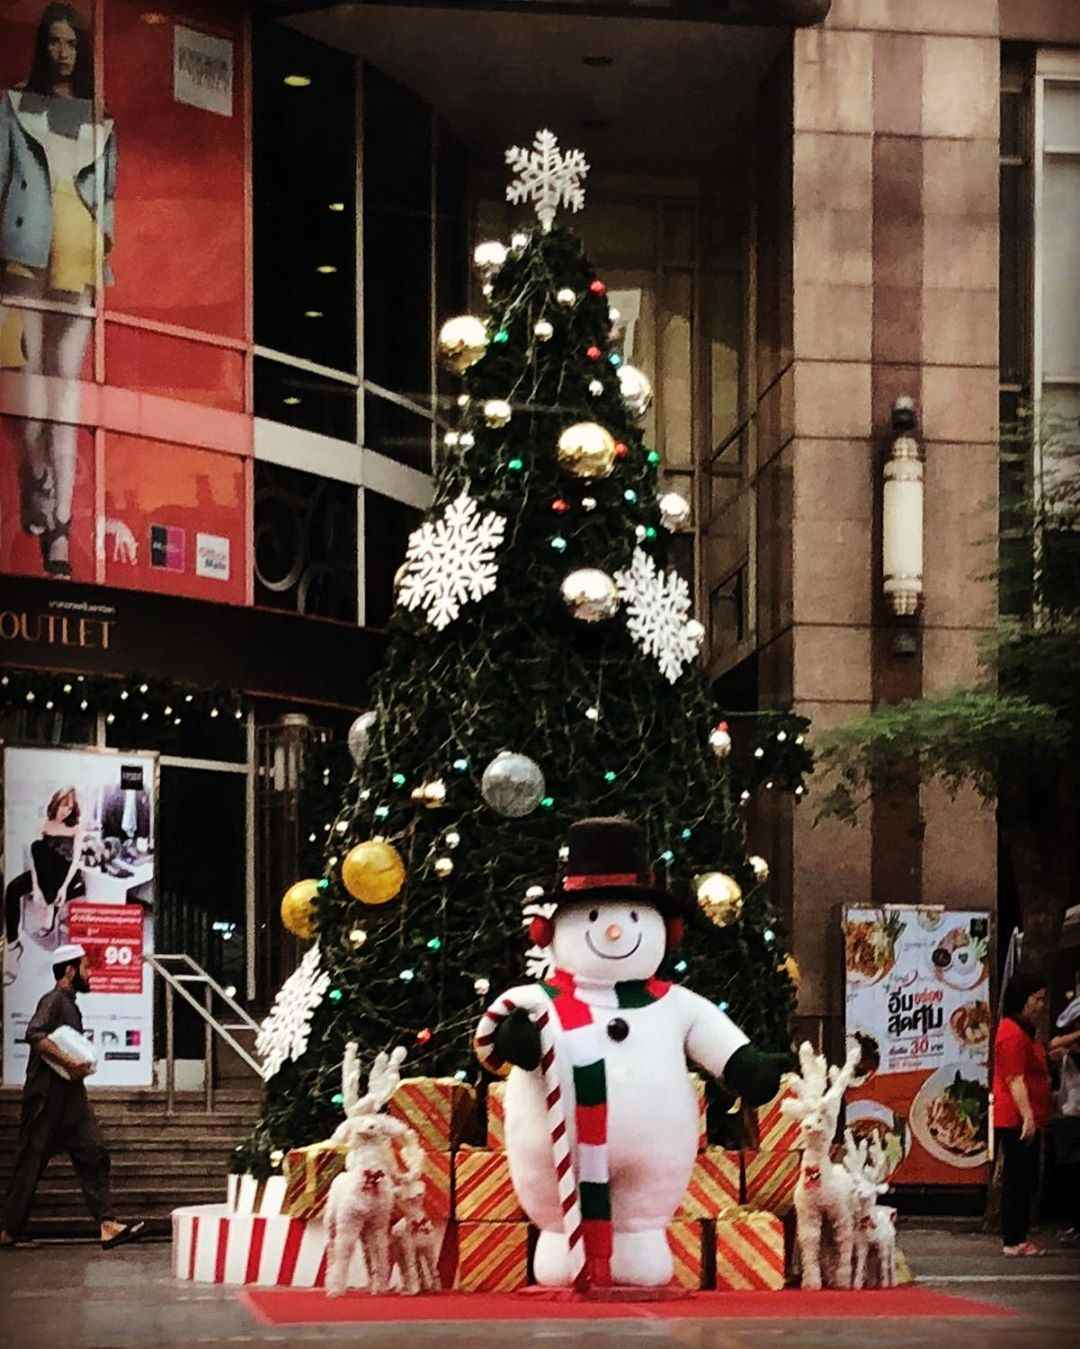 Christmas tree with inflatable snowman